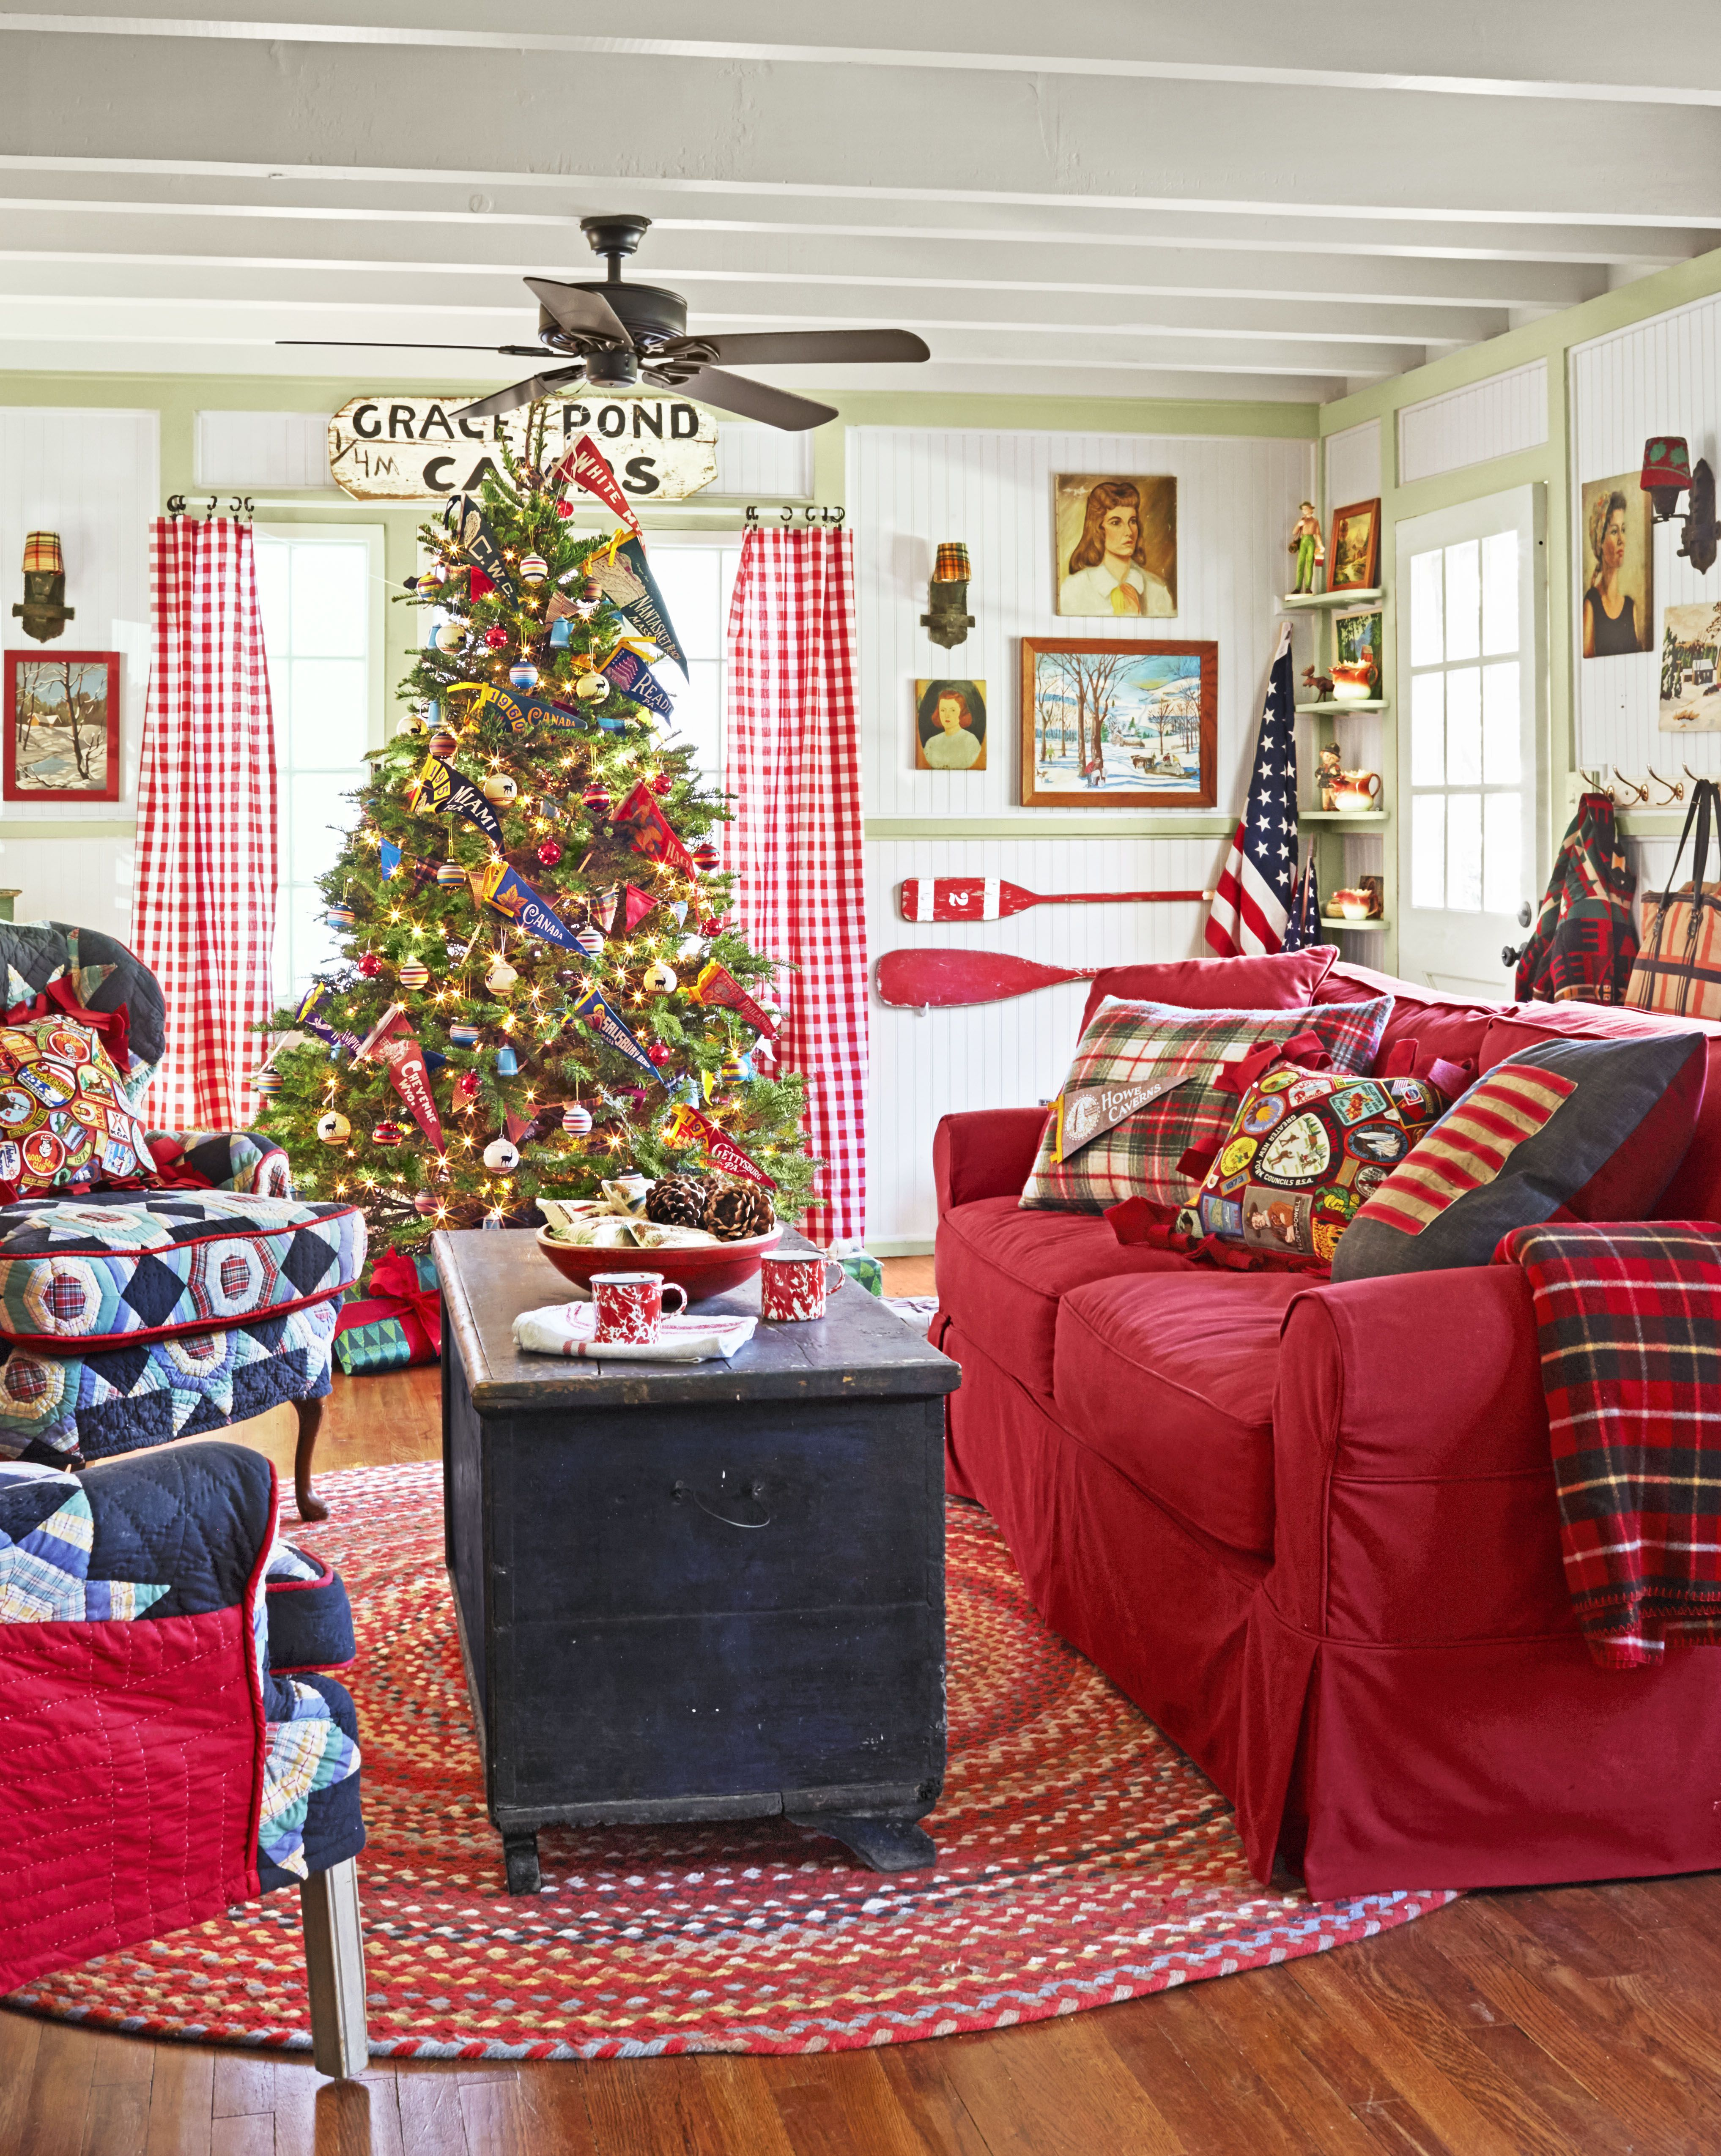 decorate small living room for christmas house decor ideas the 110 country decorations holiday decorating 2018